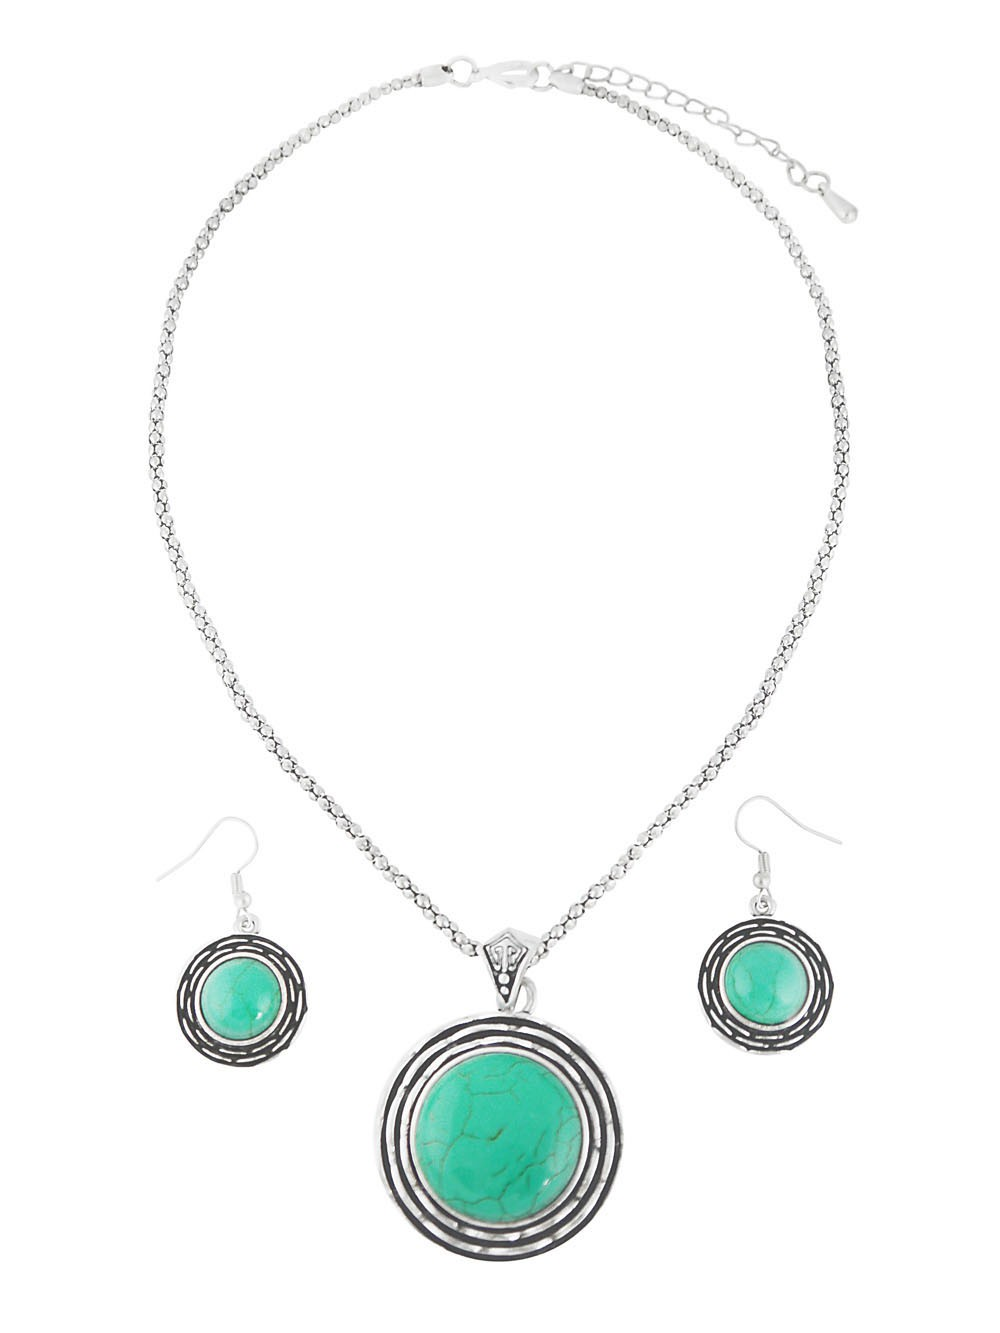 Turquoise Bead Pendant Necklace and Earrings Set